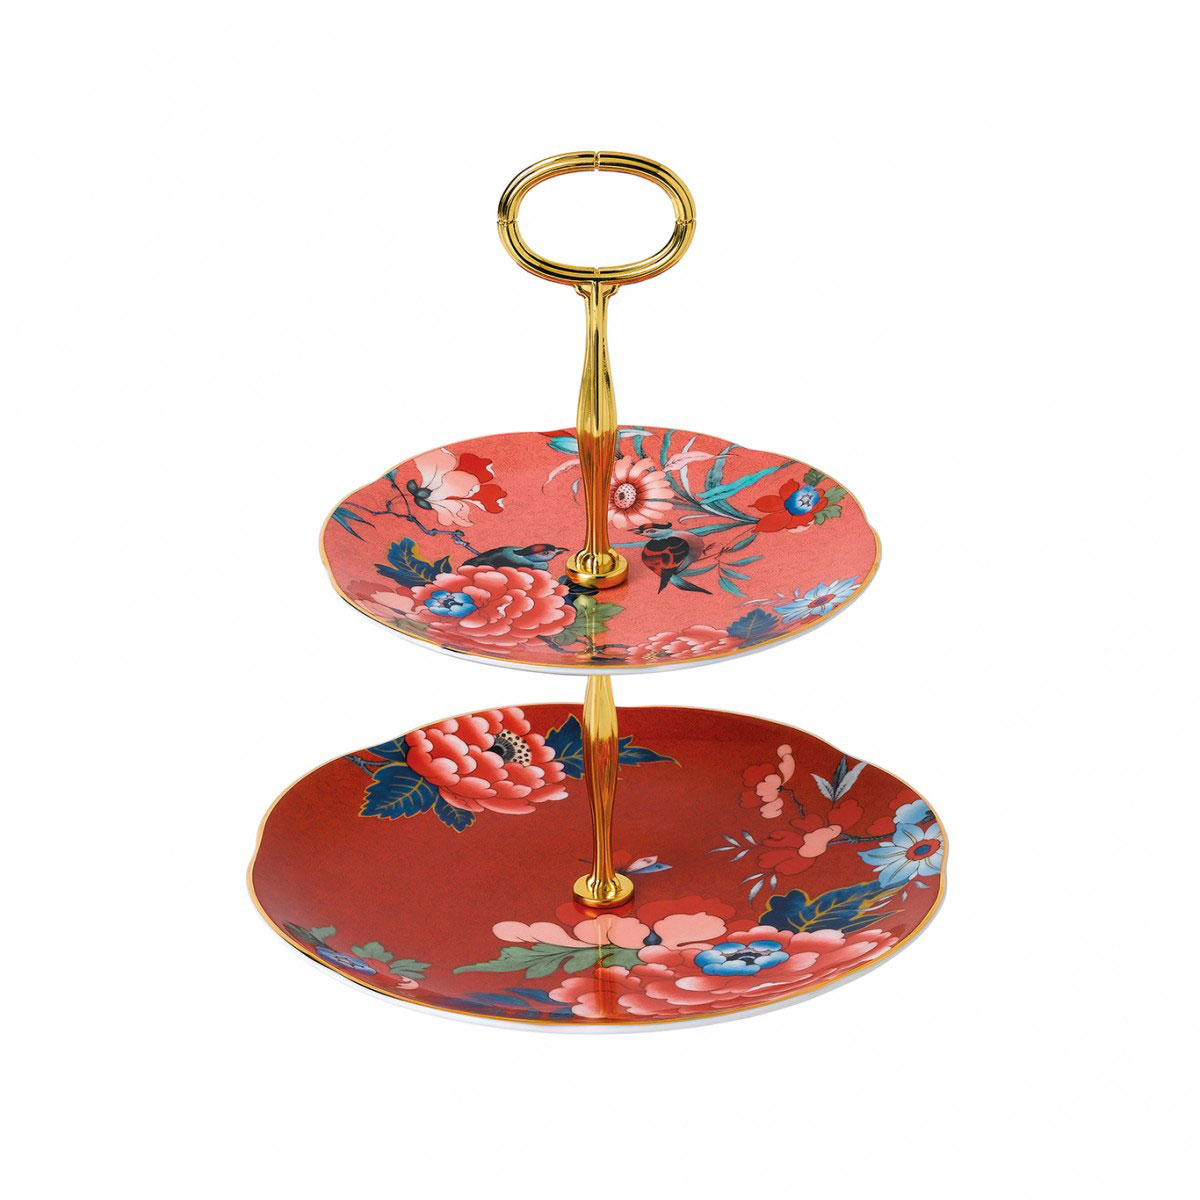 Wedgwood China Paeonia Blush Cake Stand Two Tier, Coral and Red